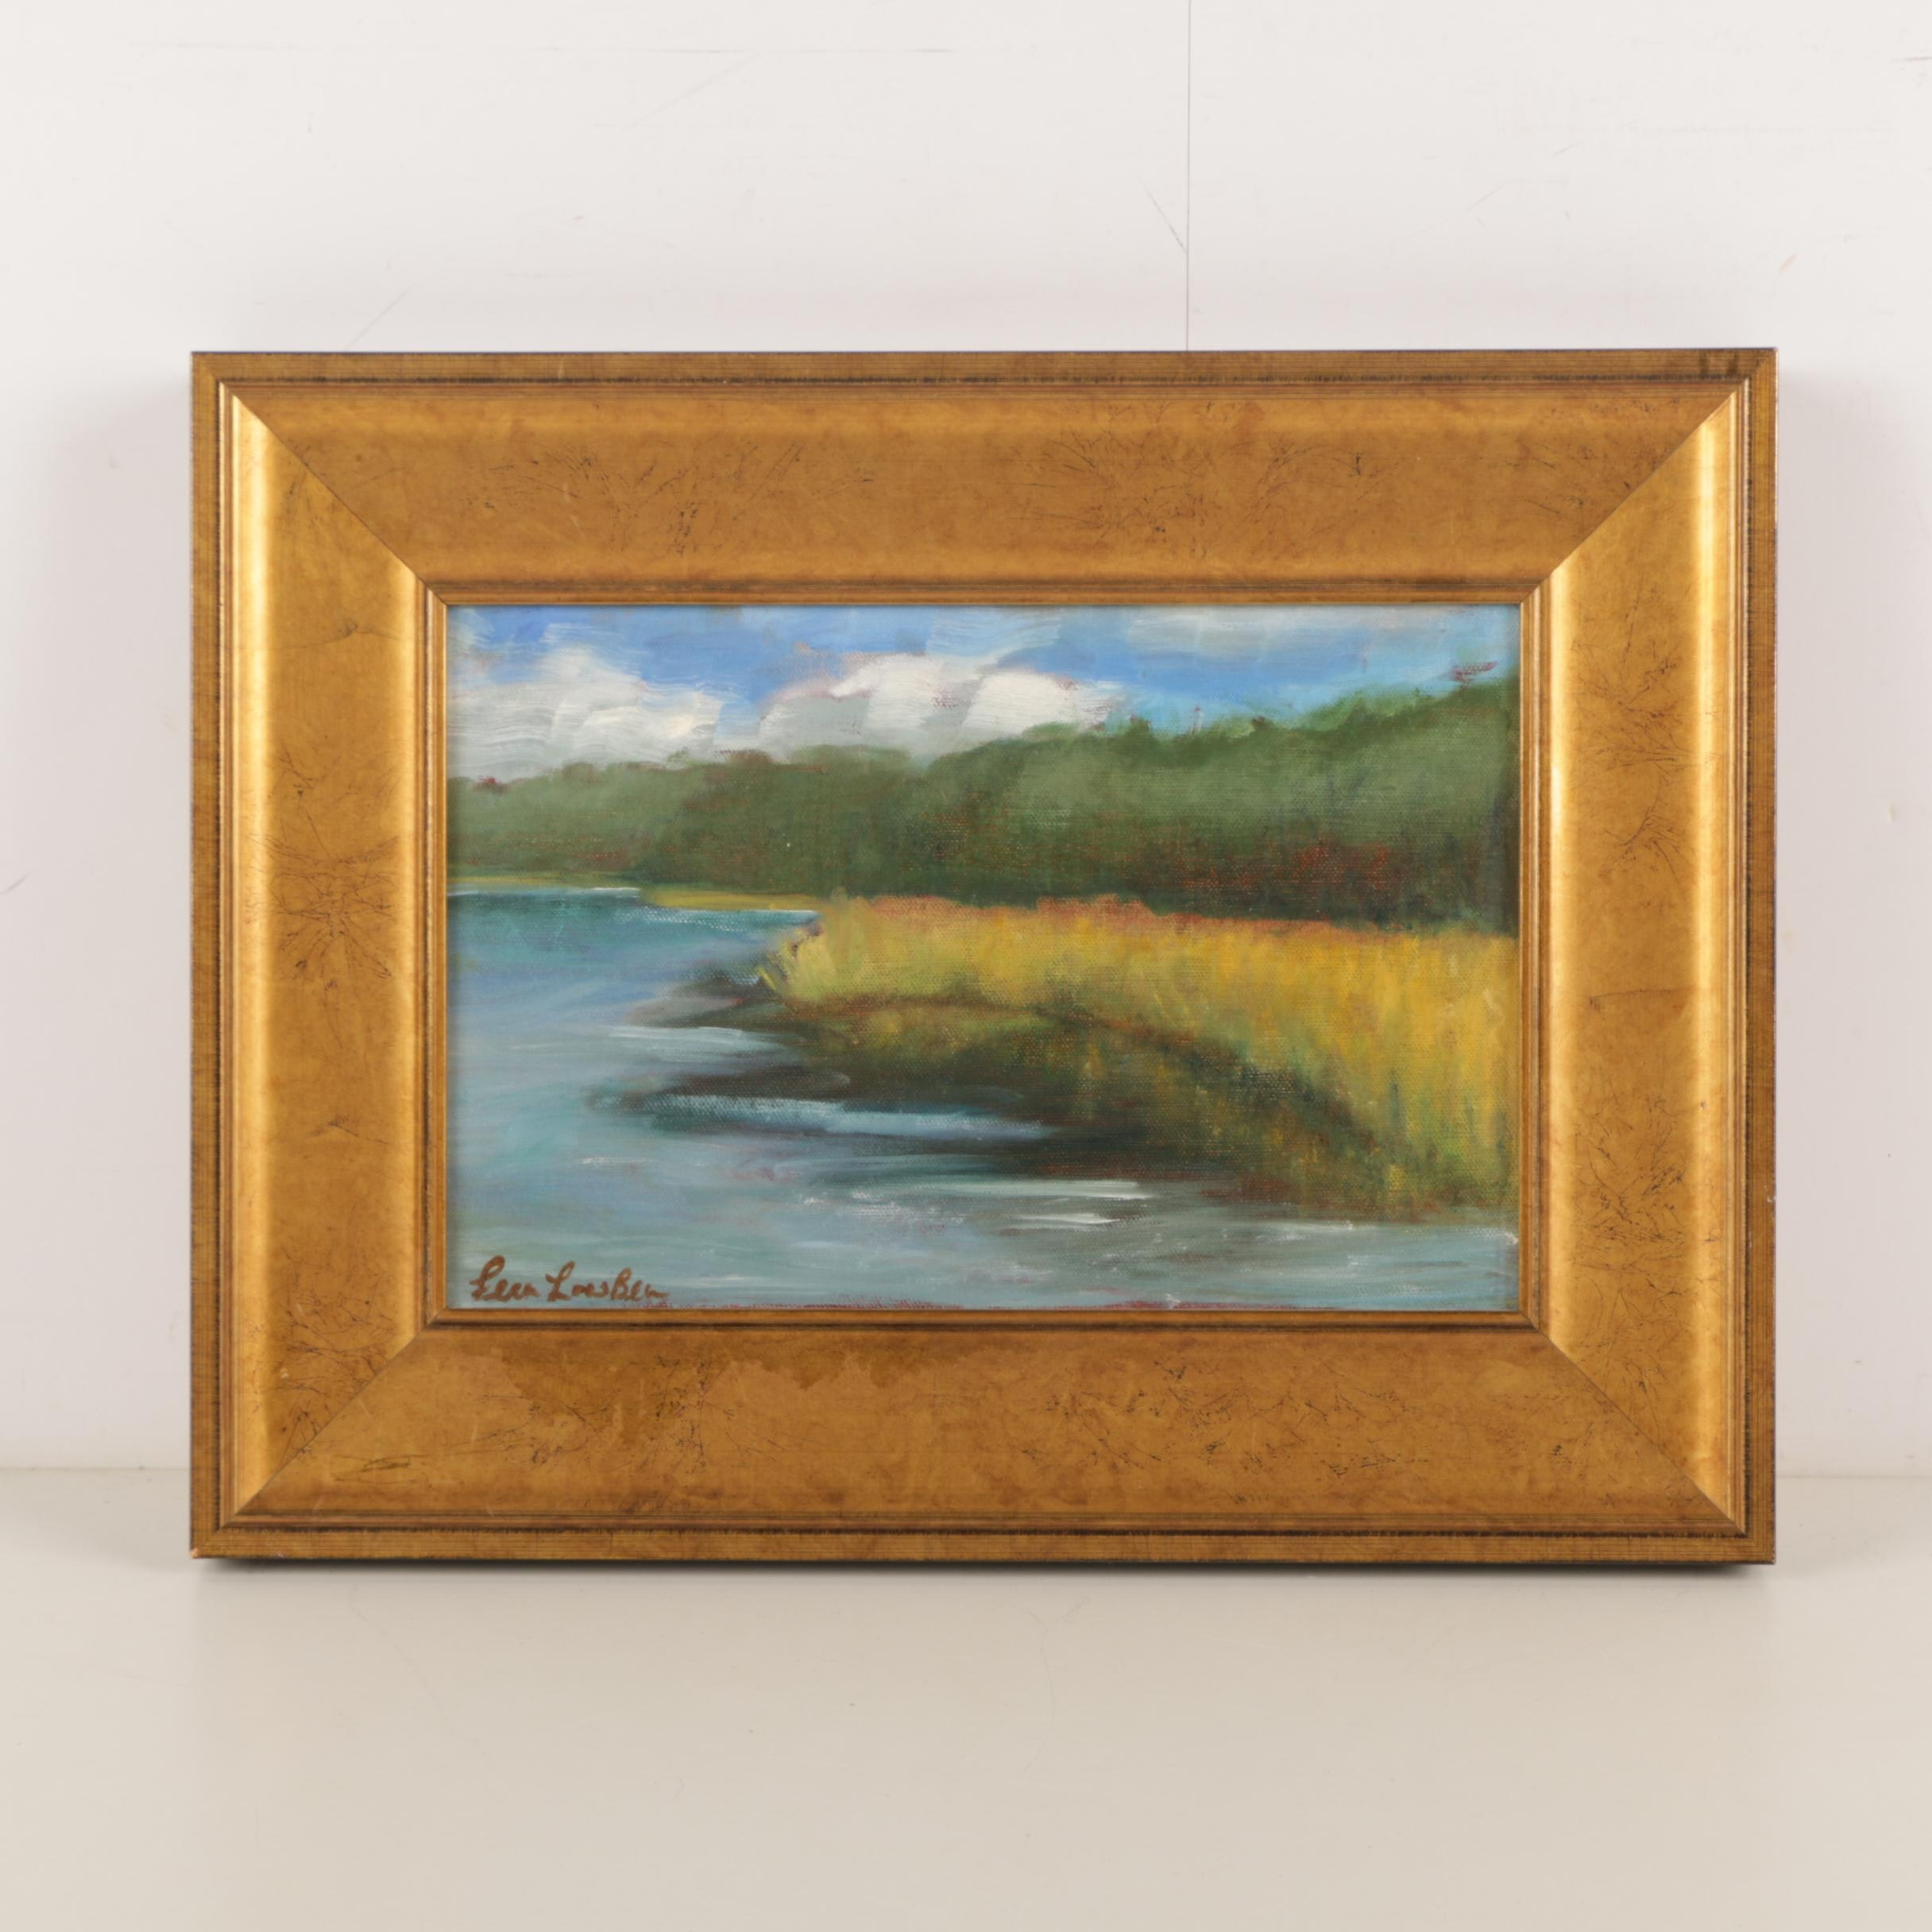 Oil Painting on Wood Panel of a Marshy Landscape